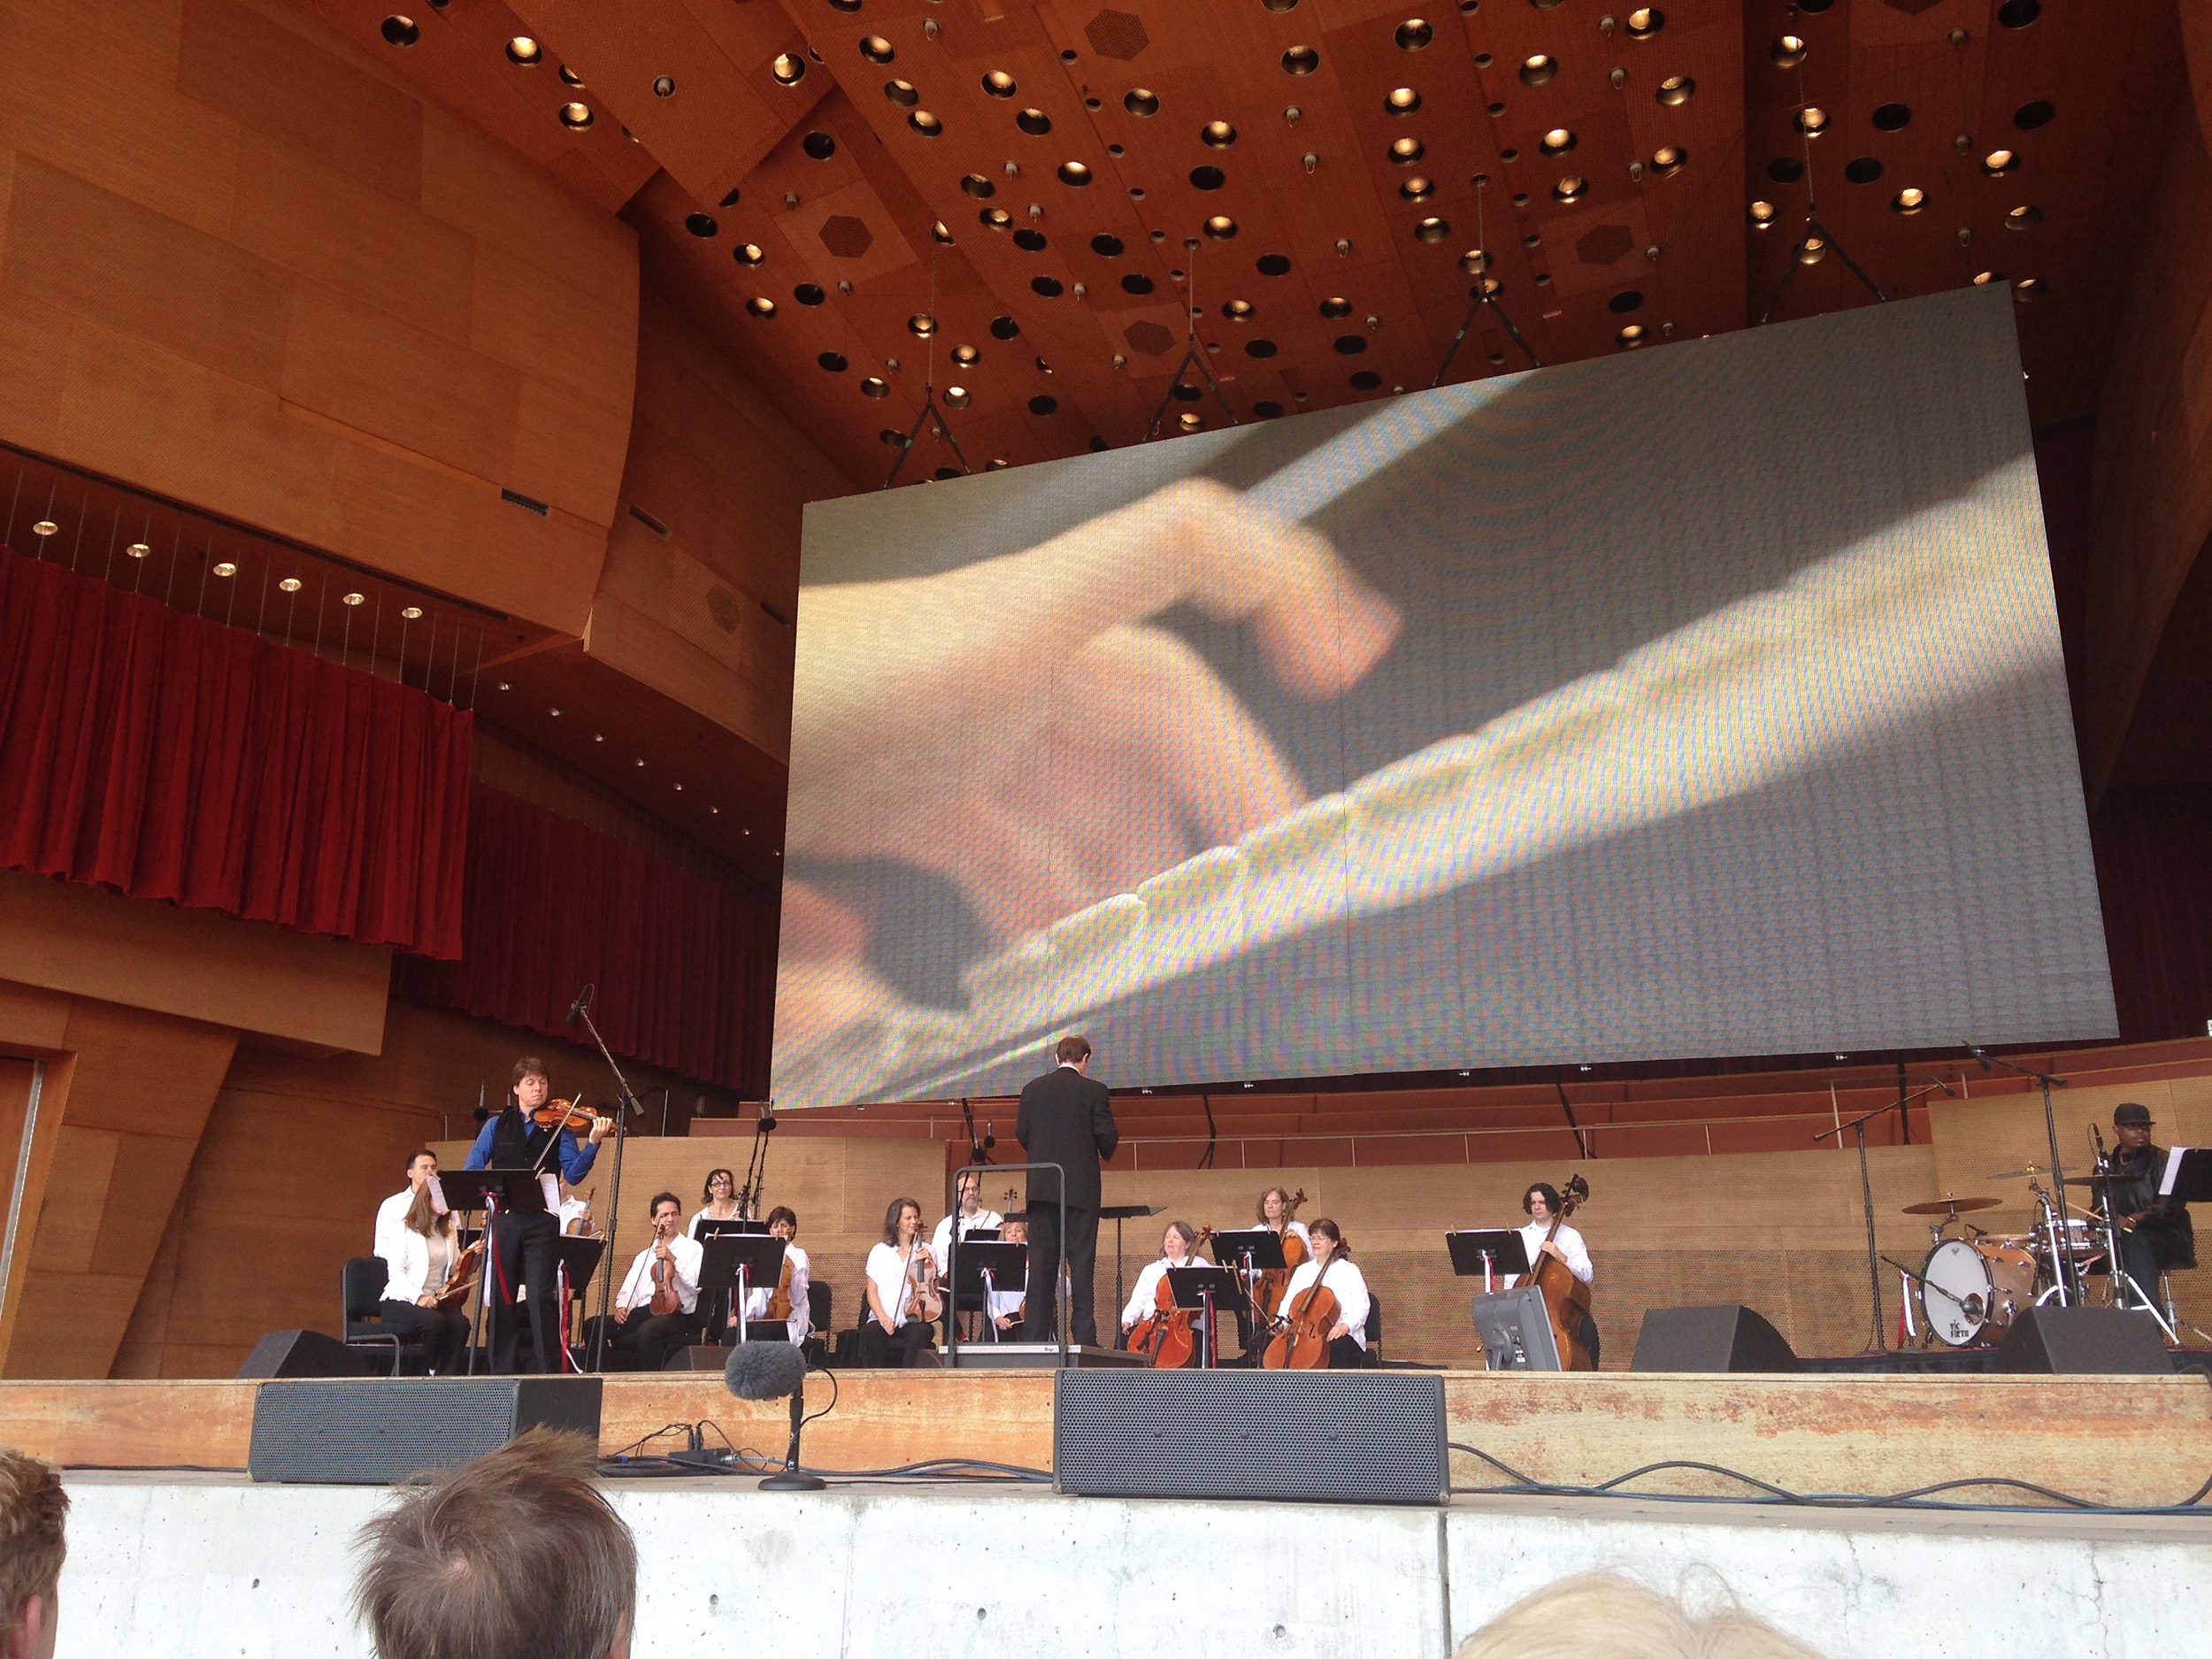 I felt very blessed to be able to come and watch the rehearsal at Millennium Park with Joshua Bell on the left.